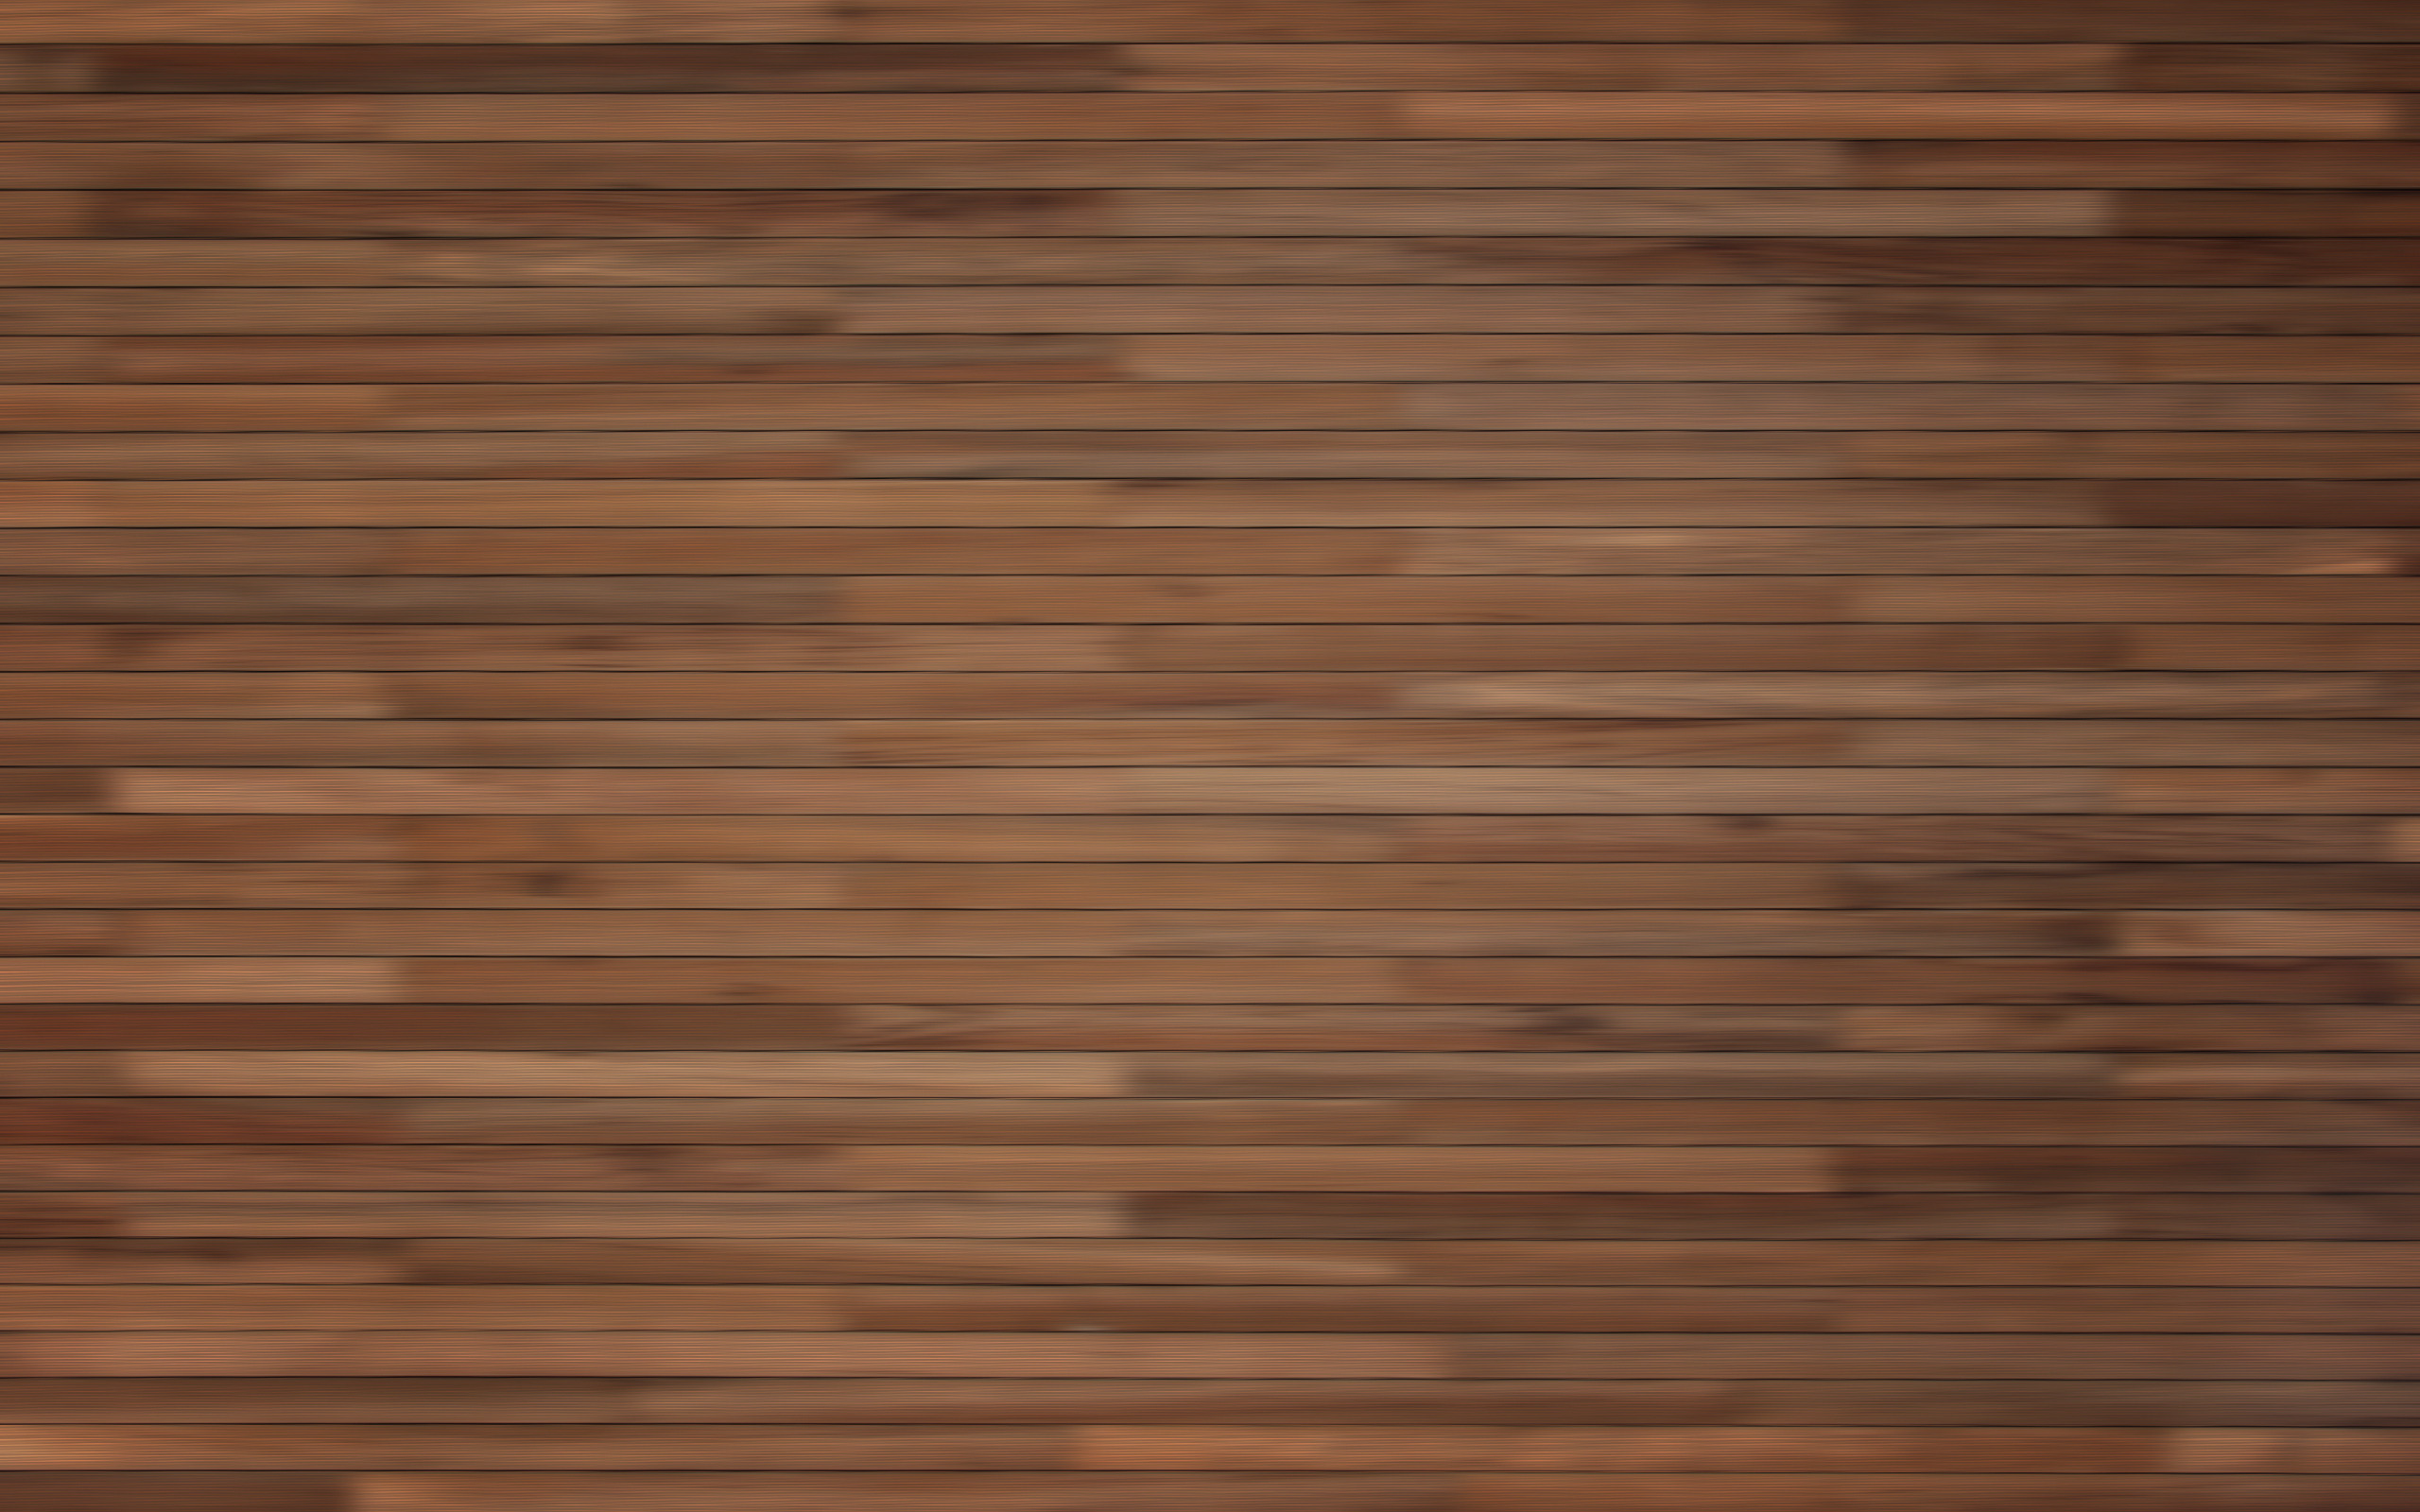 wood flooring texture new in inspiring epic floor wonderful home interior  design JARCQWN